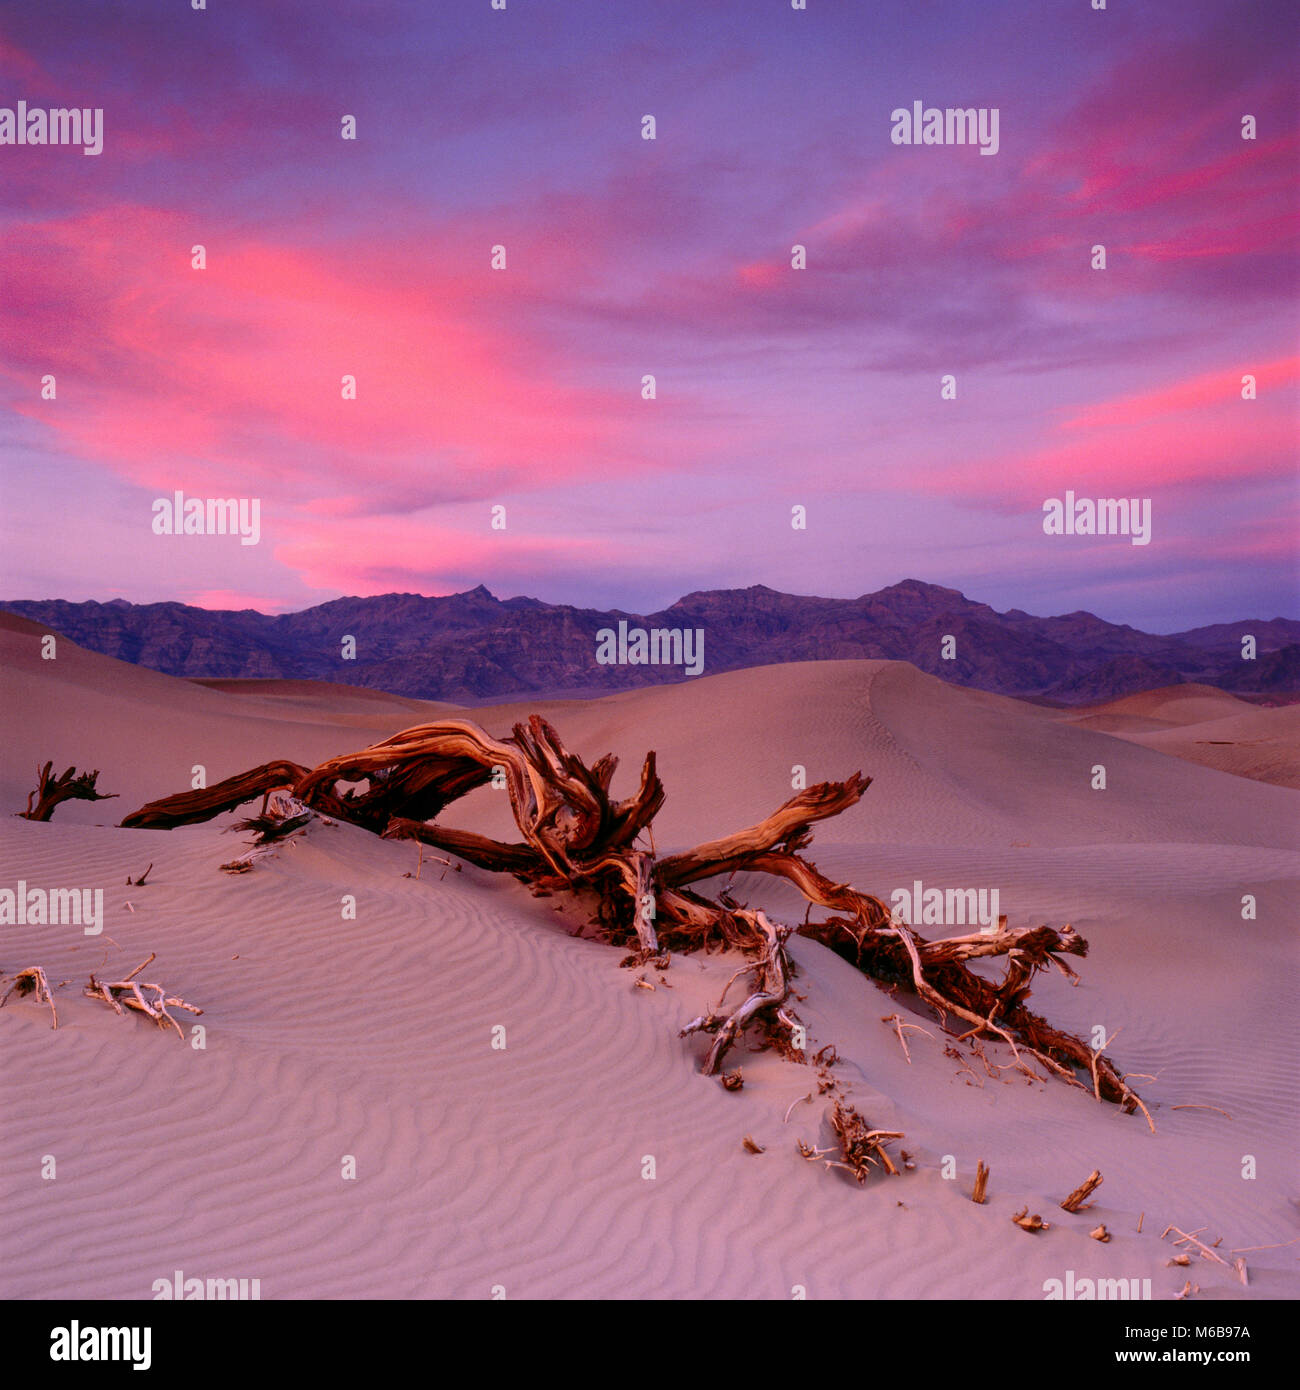 Le coucher du soleil, Tamaris, dunes, Grapevine Mountains, Death Valley National Park, Californie Photo Stock